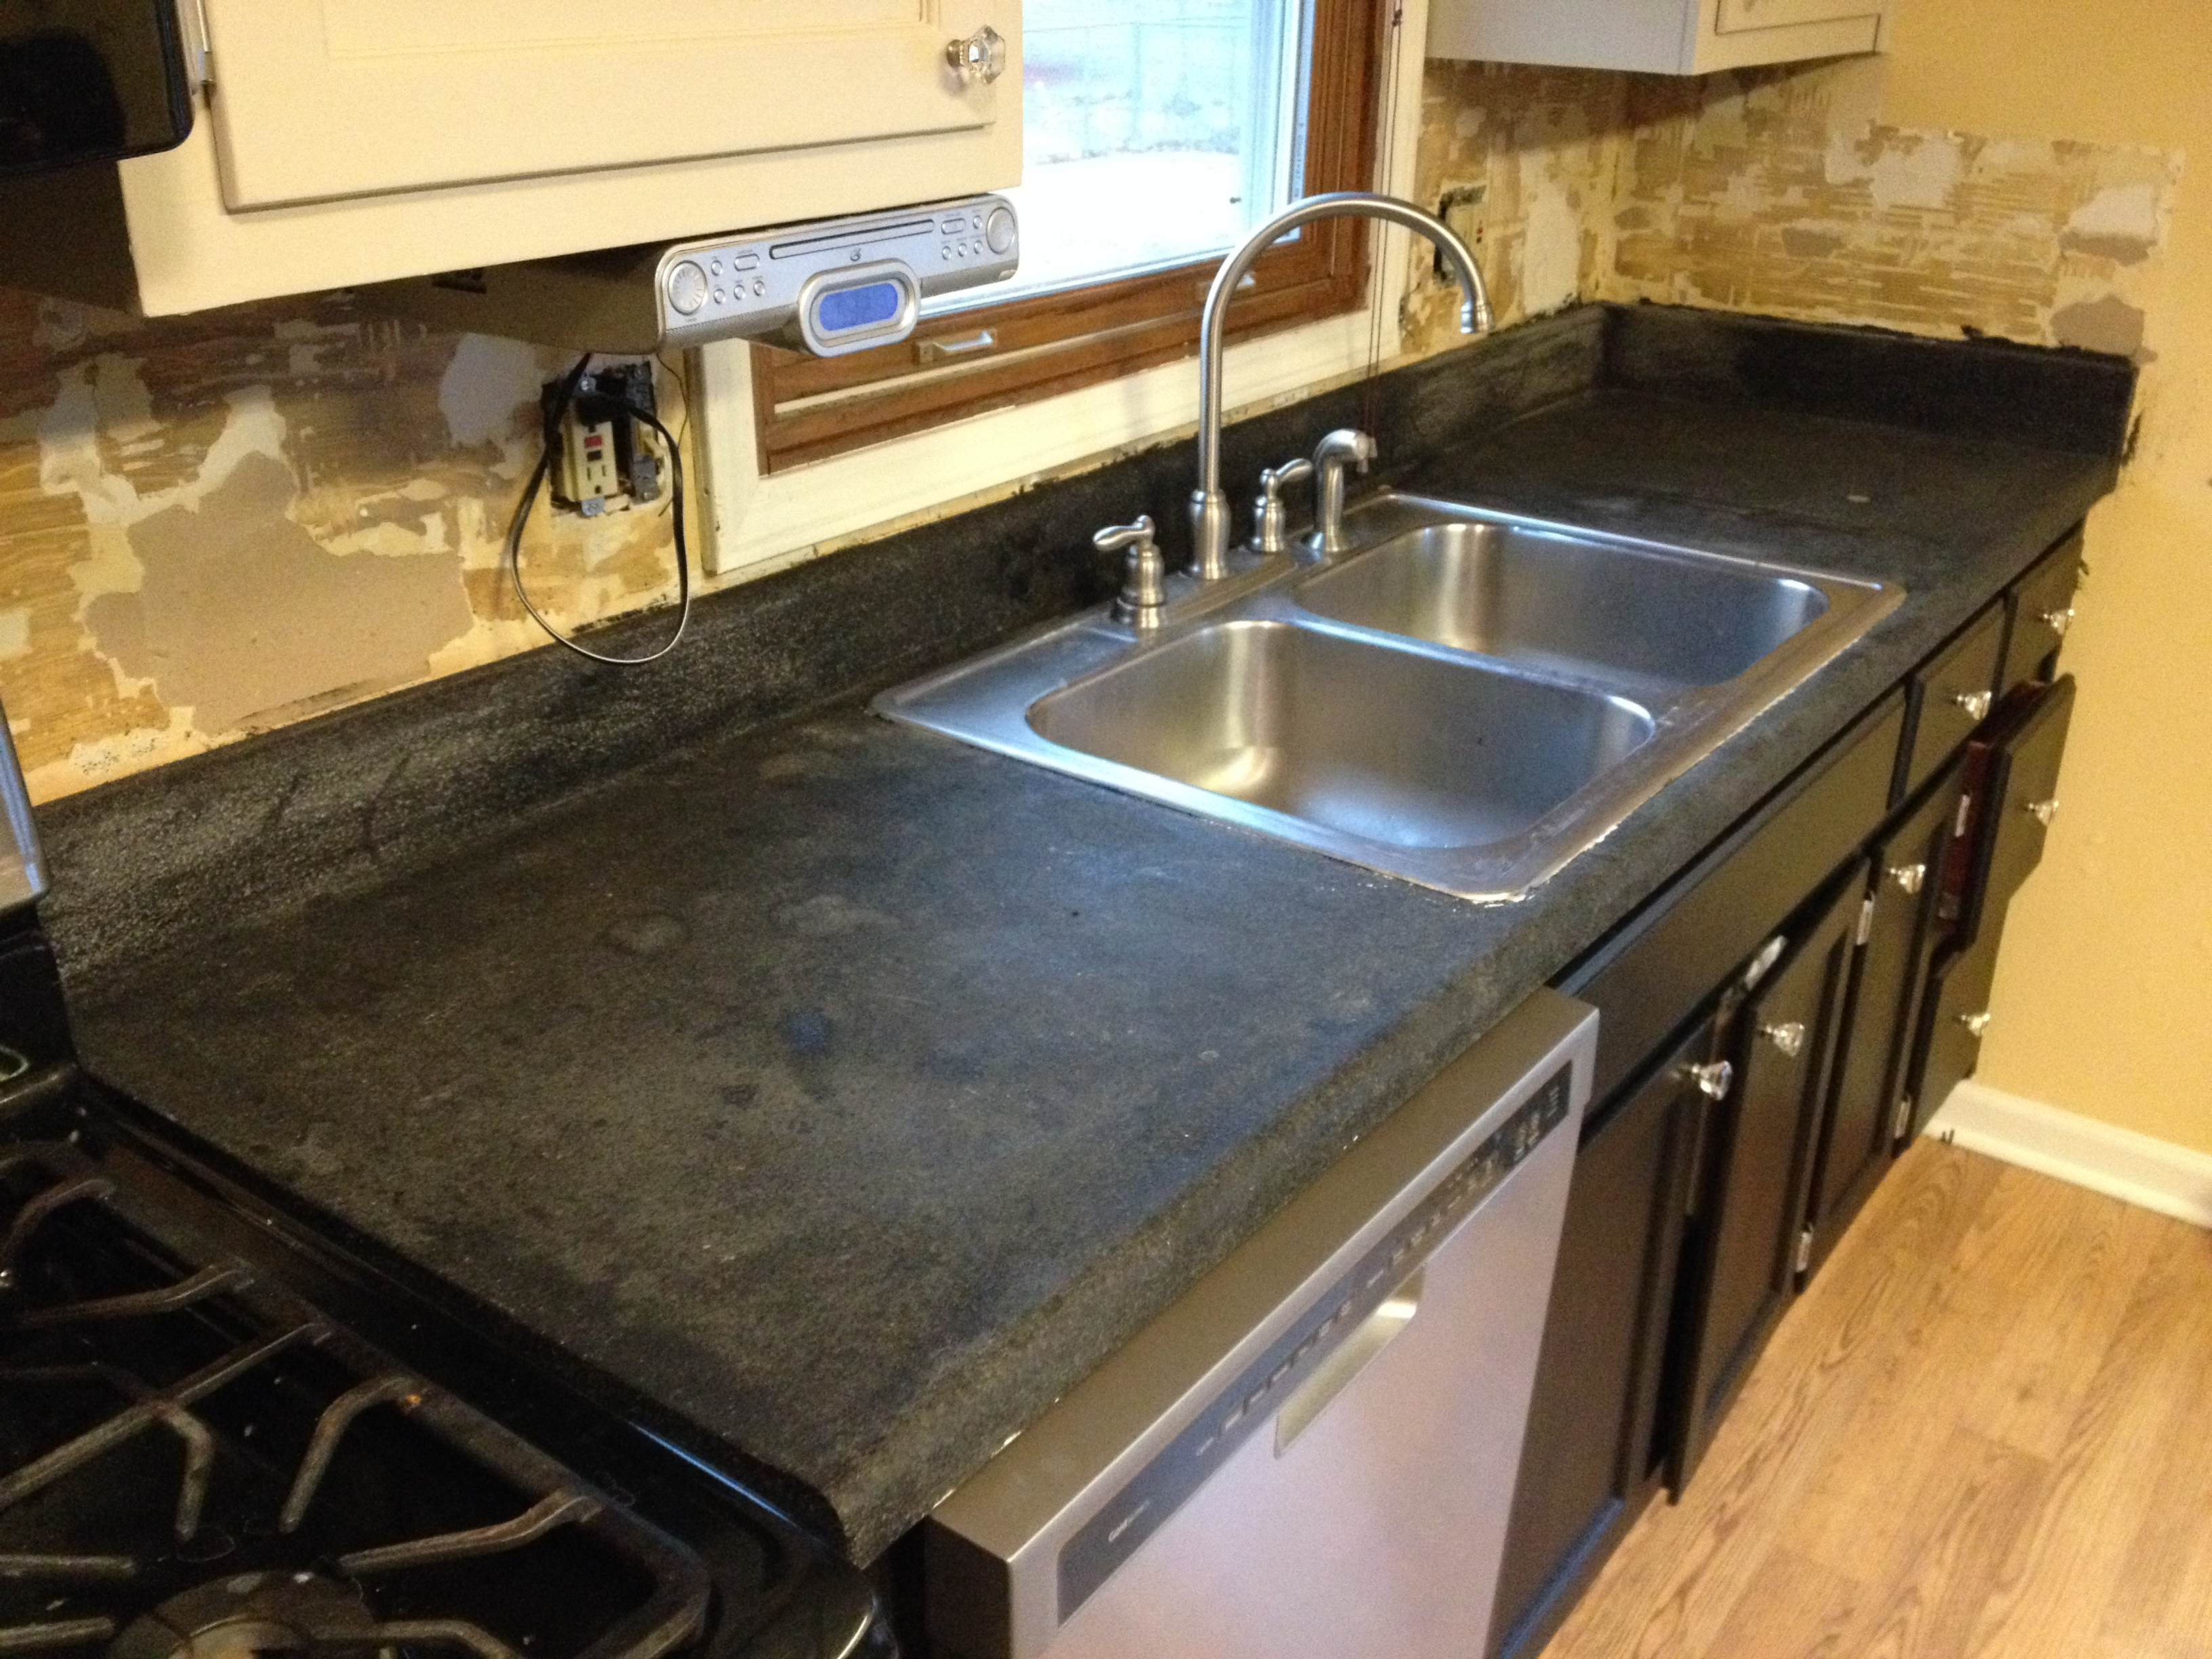 Kitchen Counter Top & Sink Replacement – Bryan Ohio